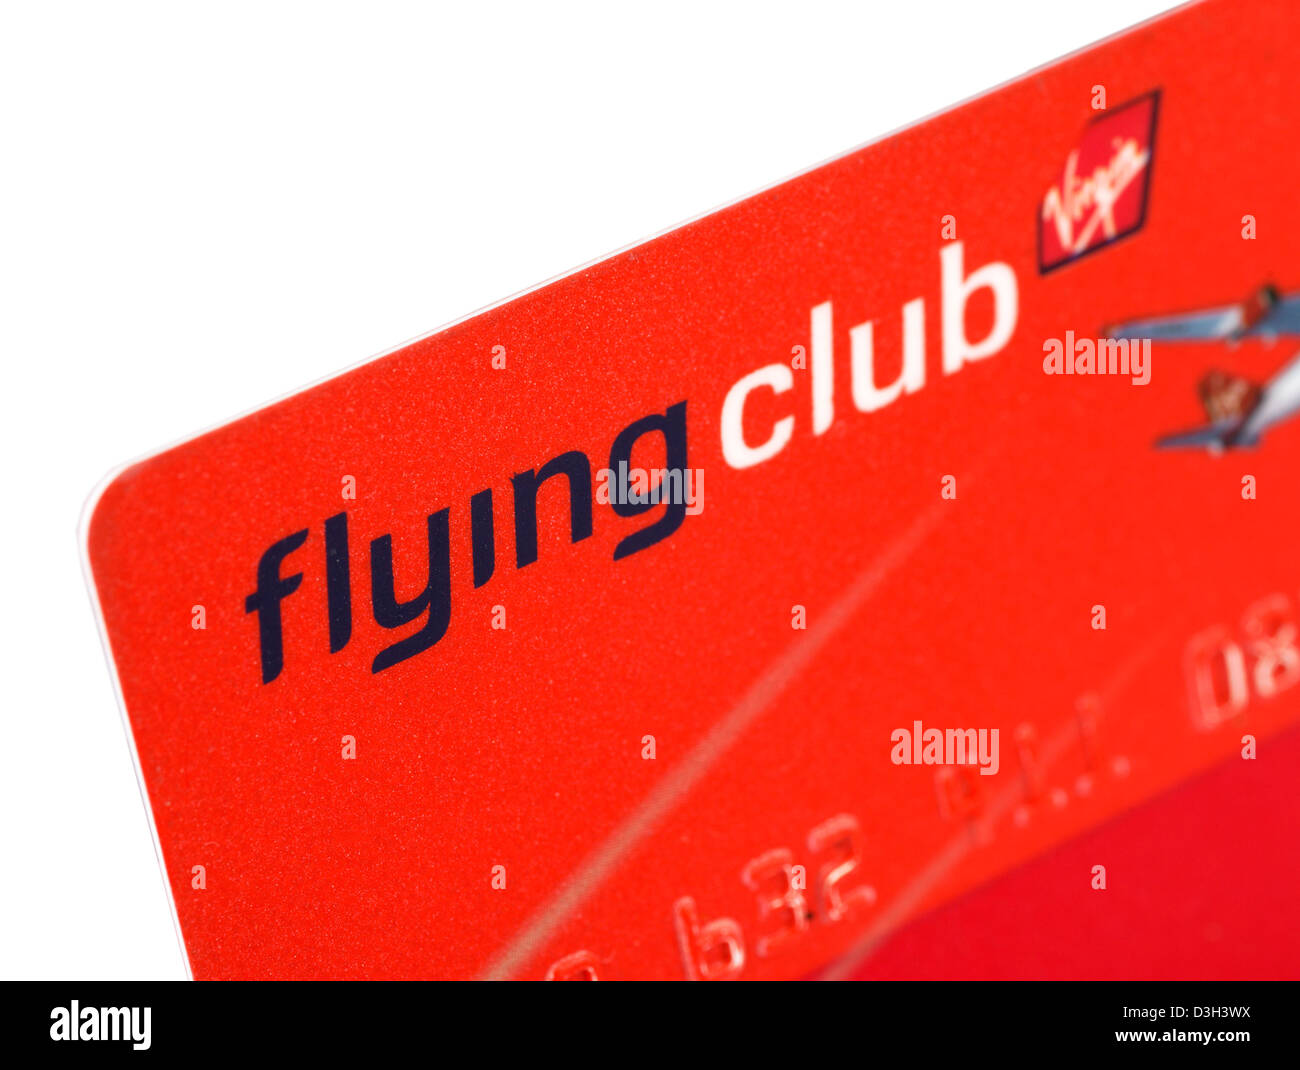 Virgin Atlantic Airways Flying Club frequent flyer card - Stock Image